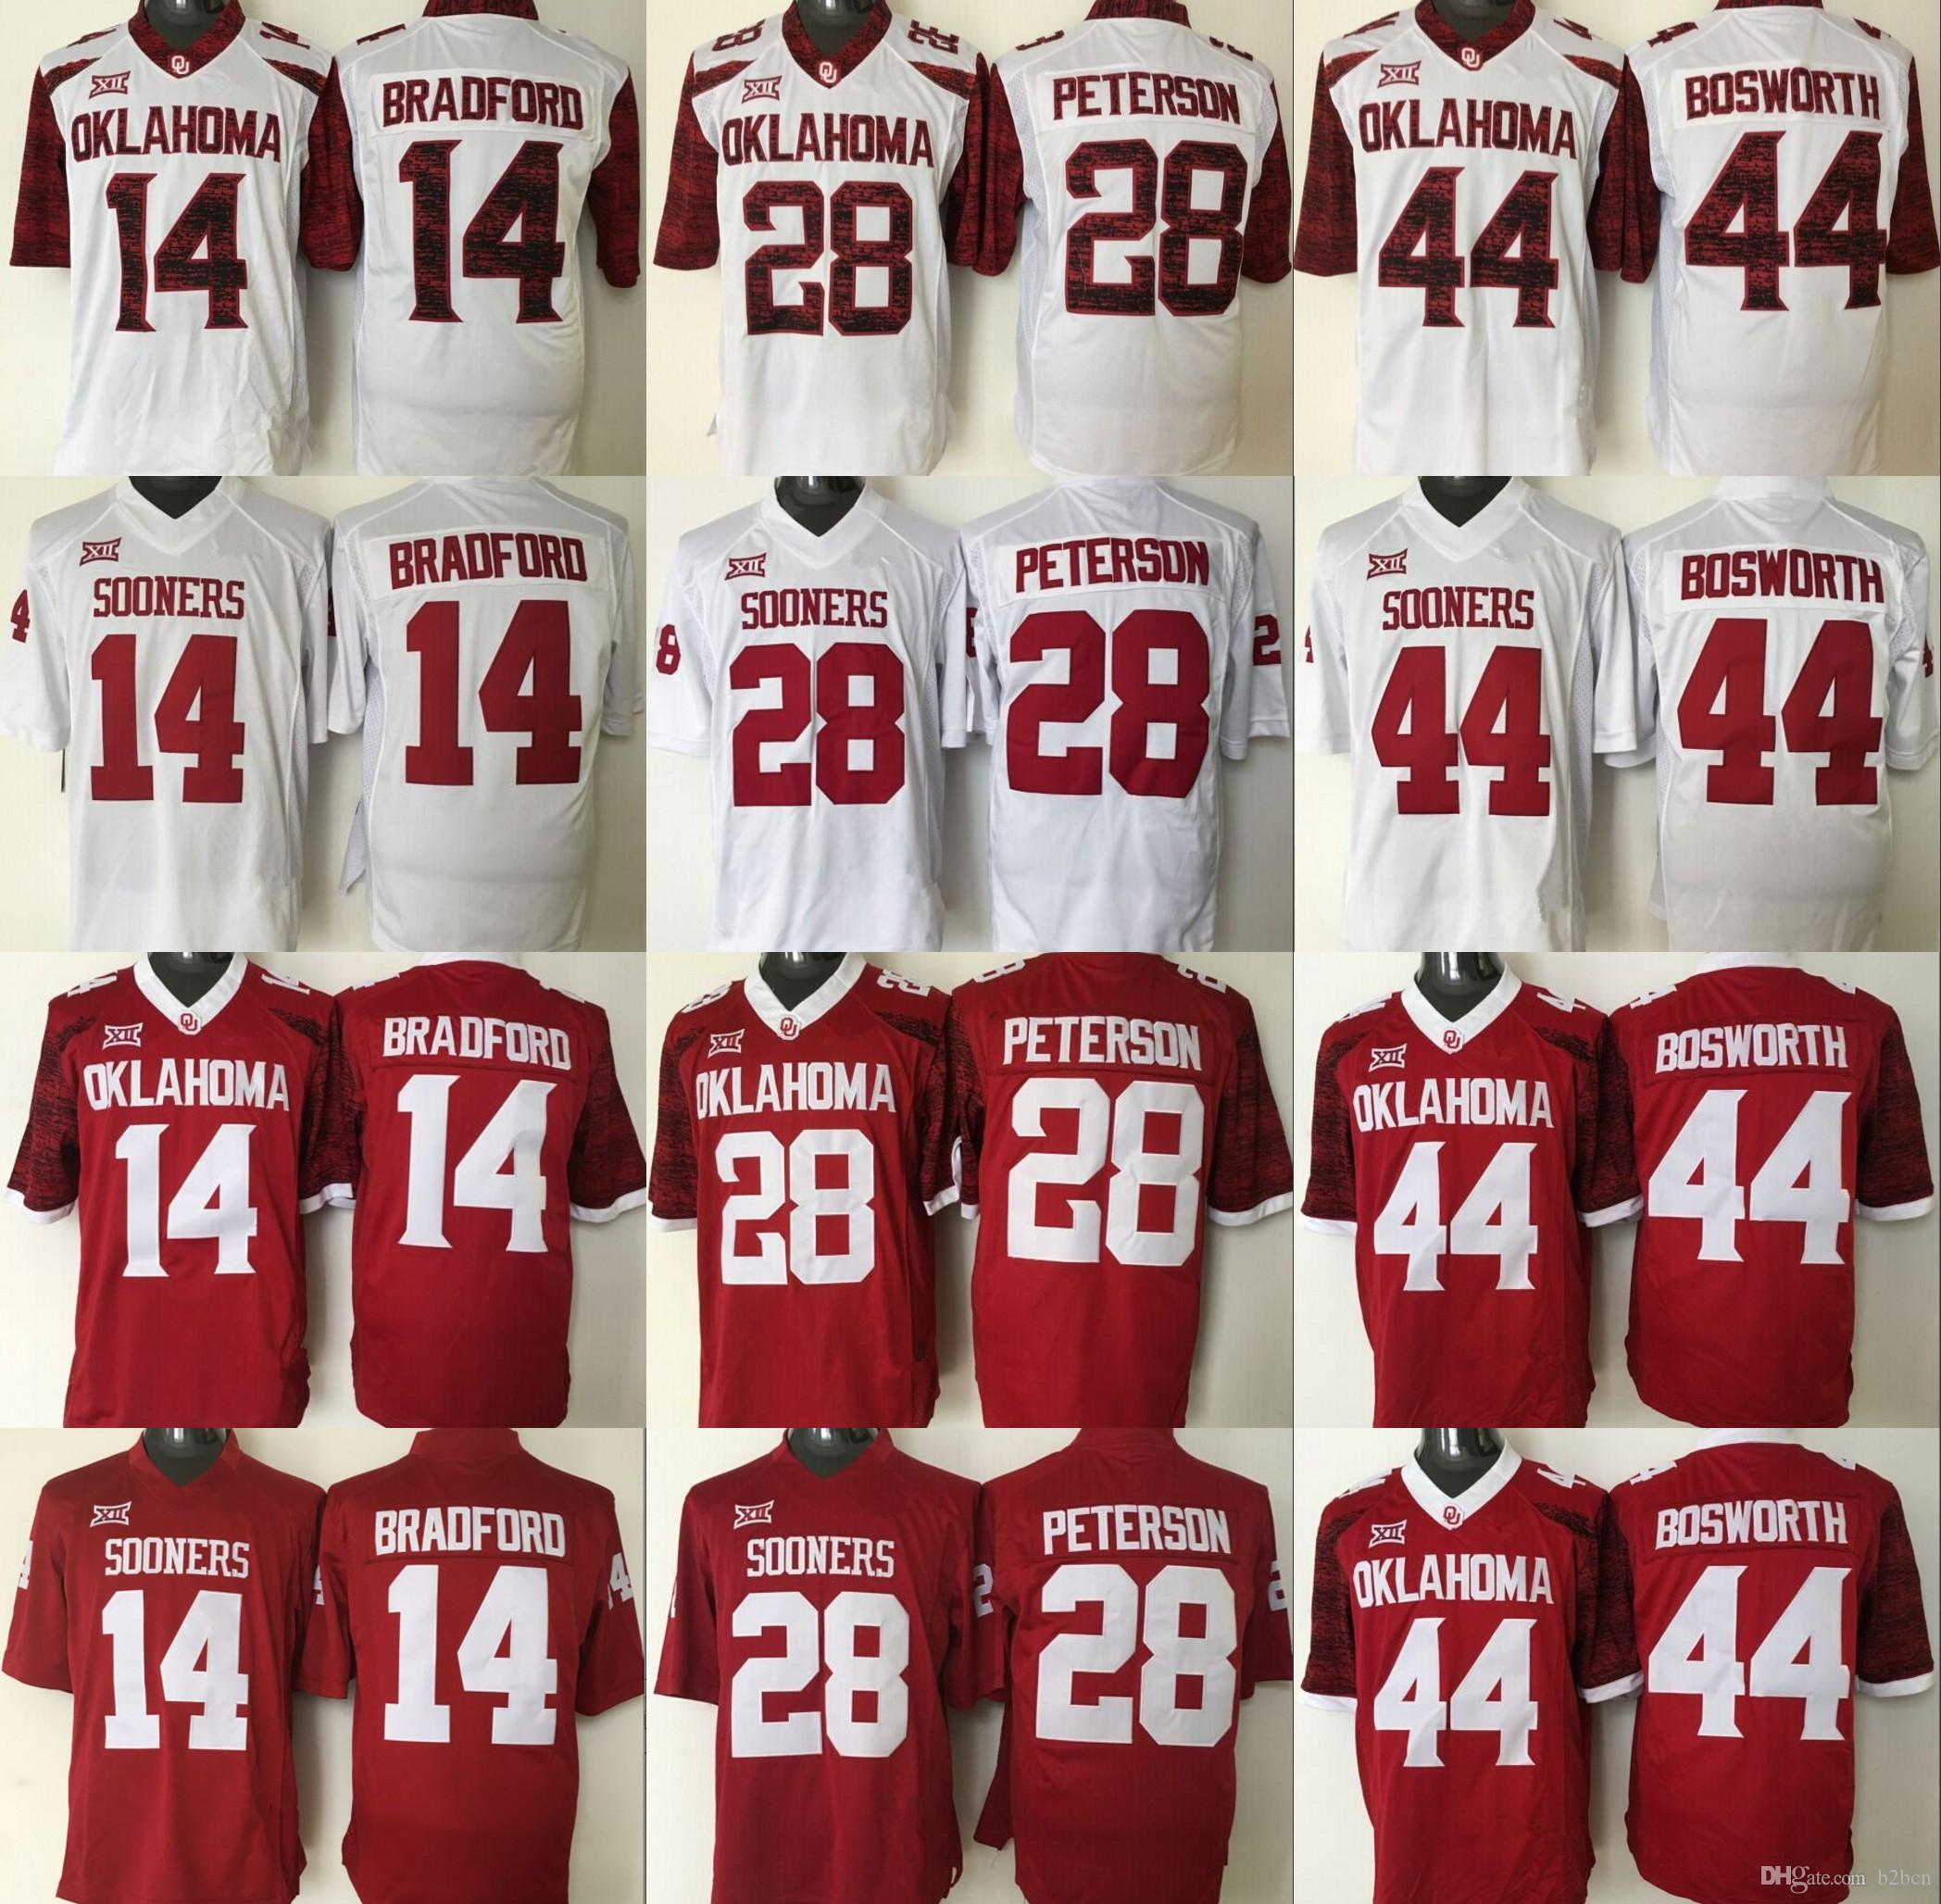 2346f9233 Oklahoma Sooners Jersey 2016 Football Ncaa College 14 Sam Bradford 28  Adrian Peterson ...